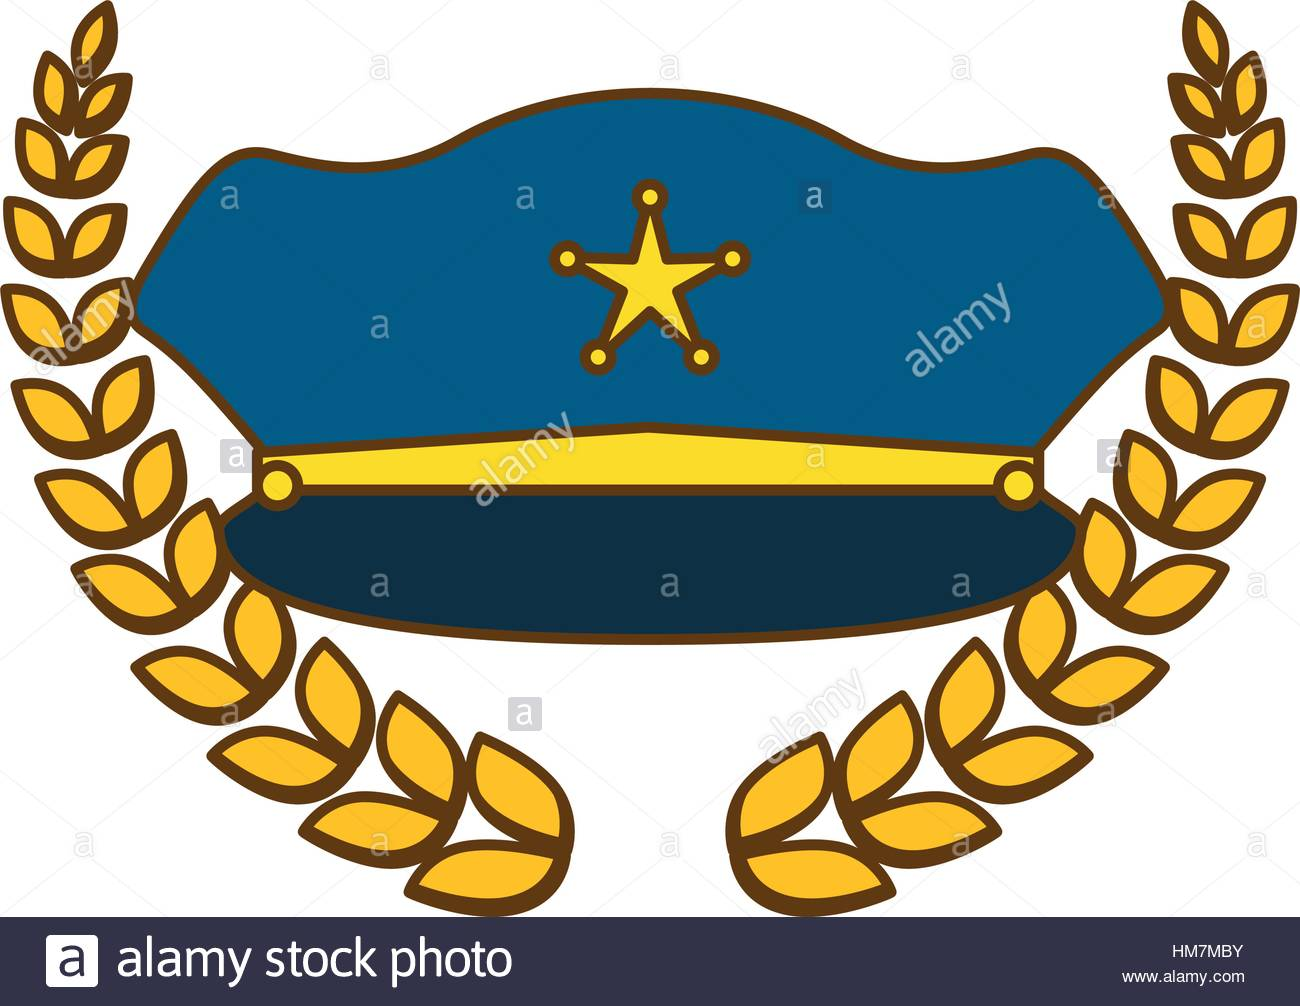 1300x1006 Gold Police Badge Icon Image, Vector Illustration Stock Vector Art